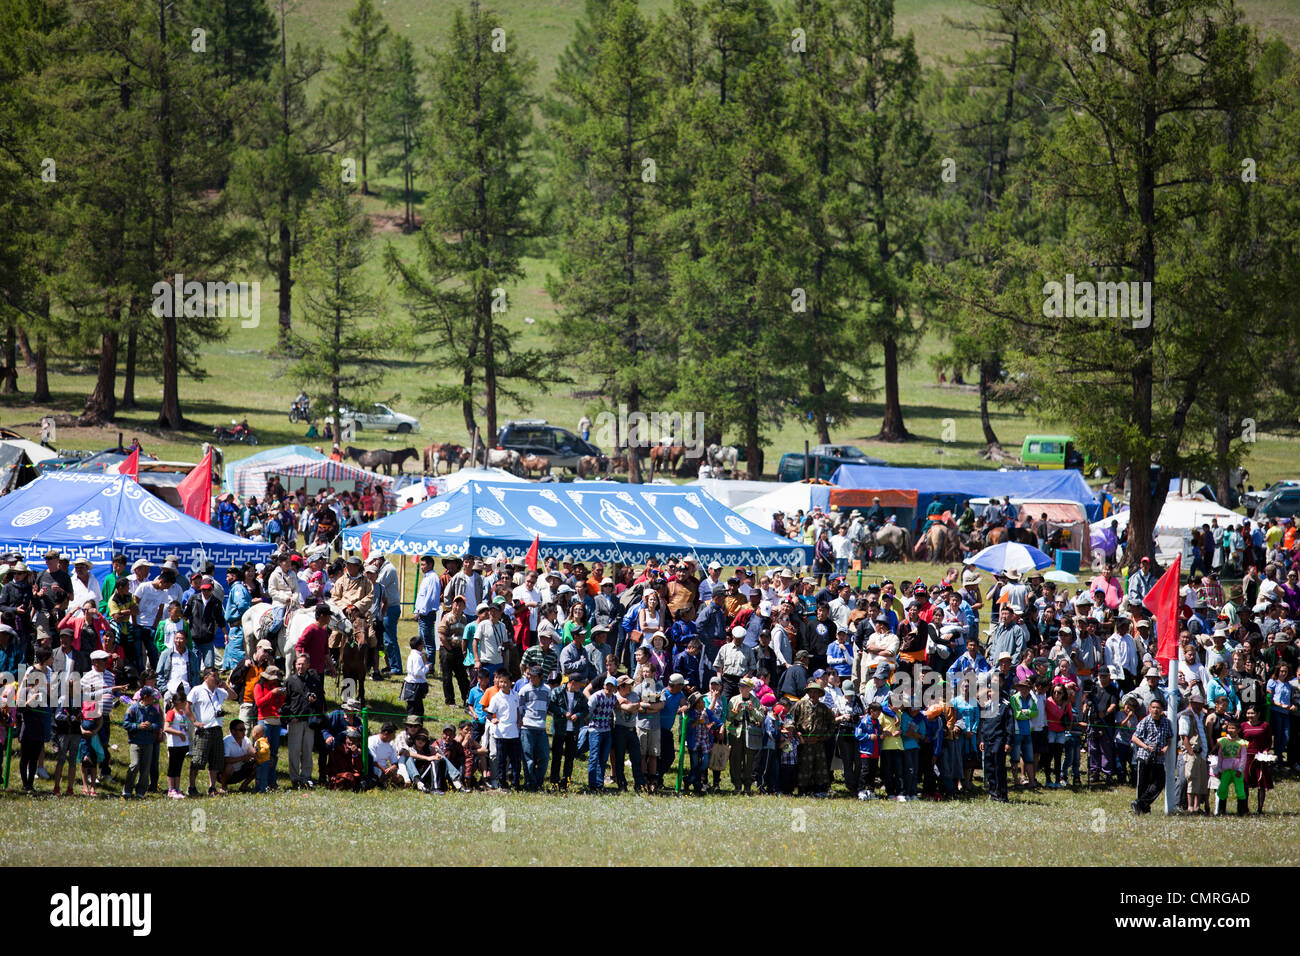 Crowd with people for Naadam festival, Khovsgol, Mongolia - Stock Image